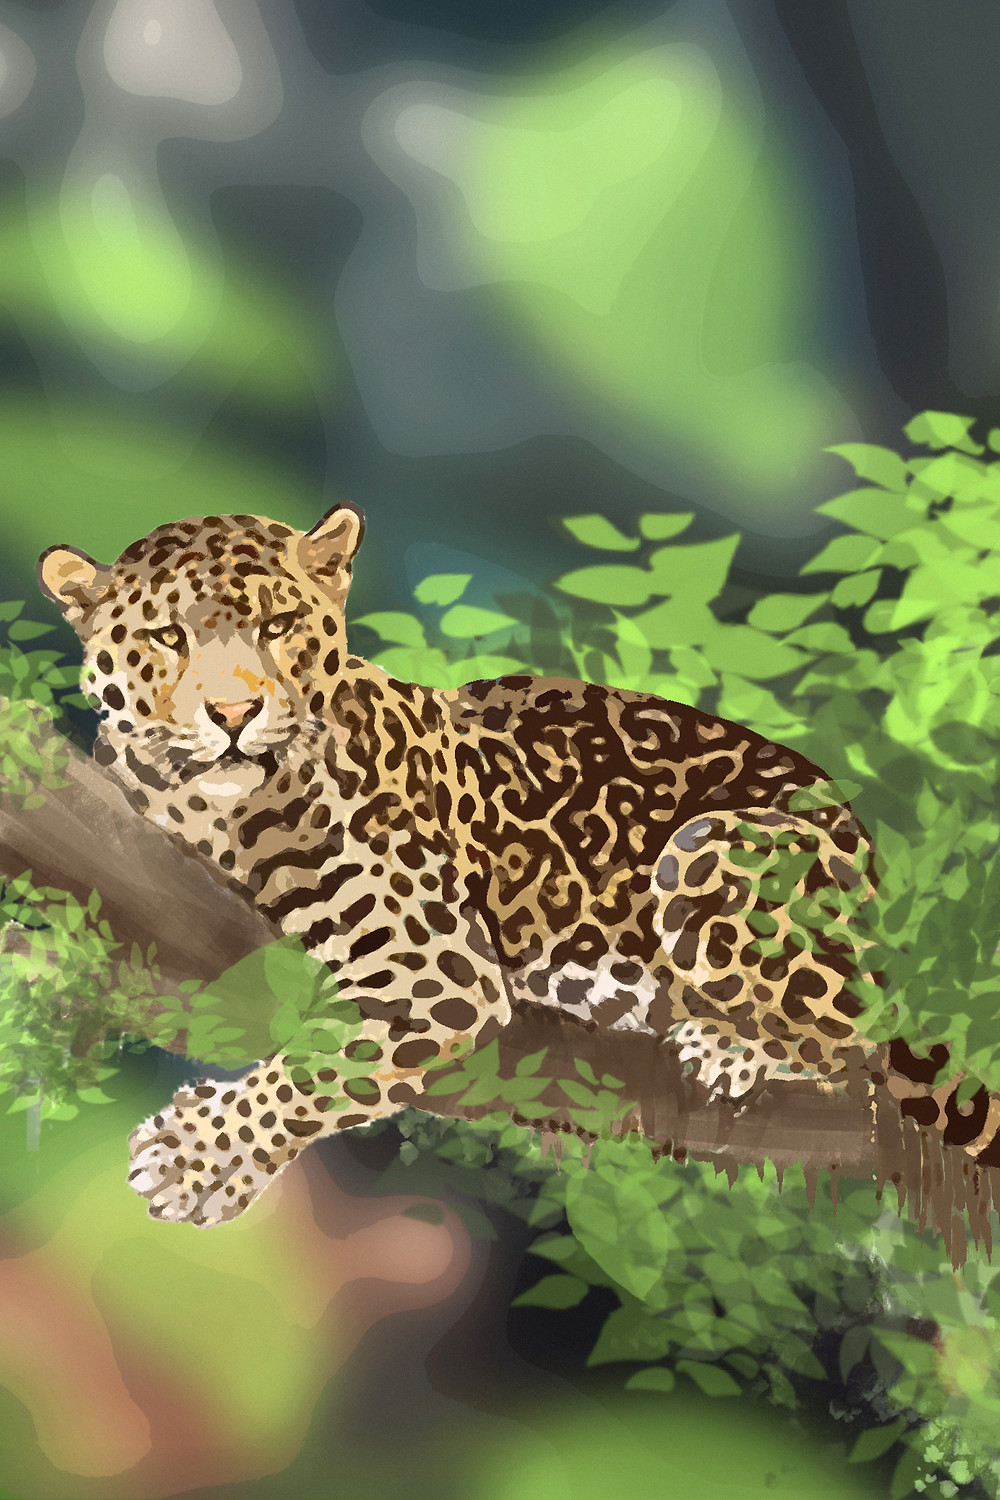 What does an Amur leopard look like